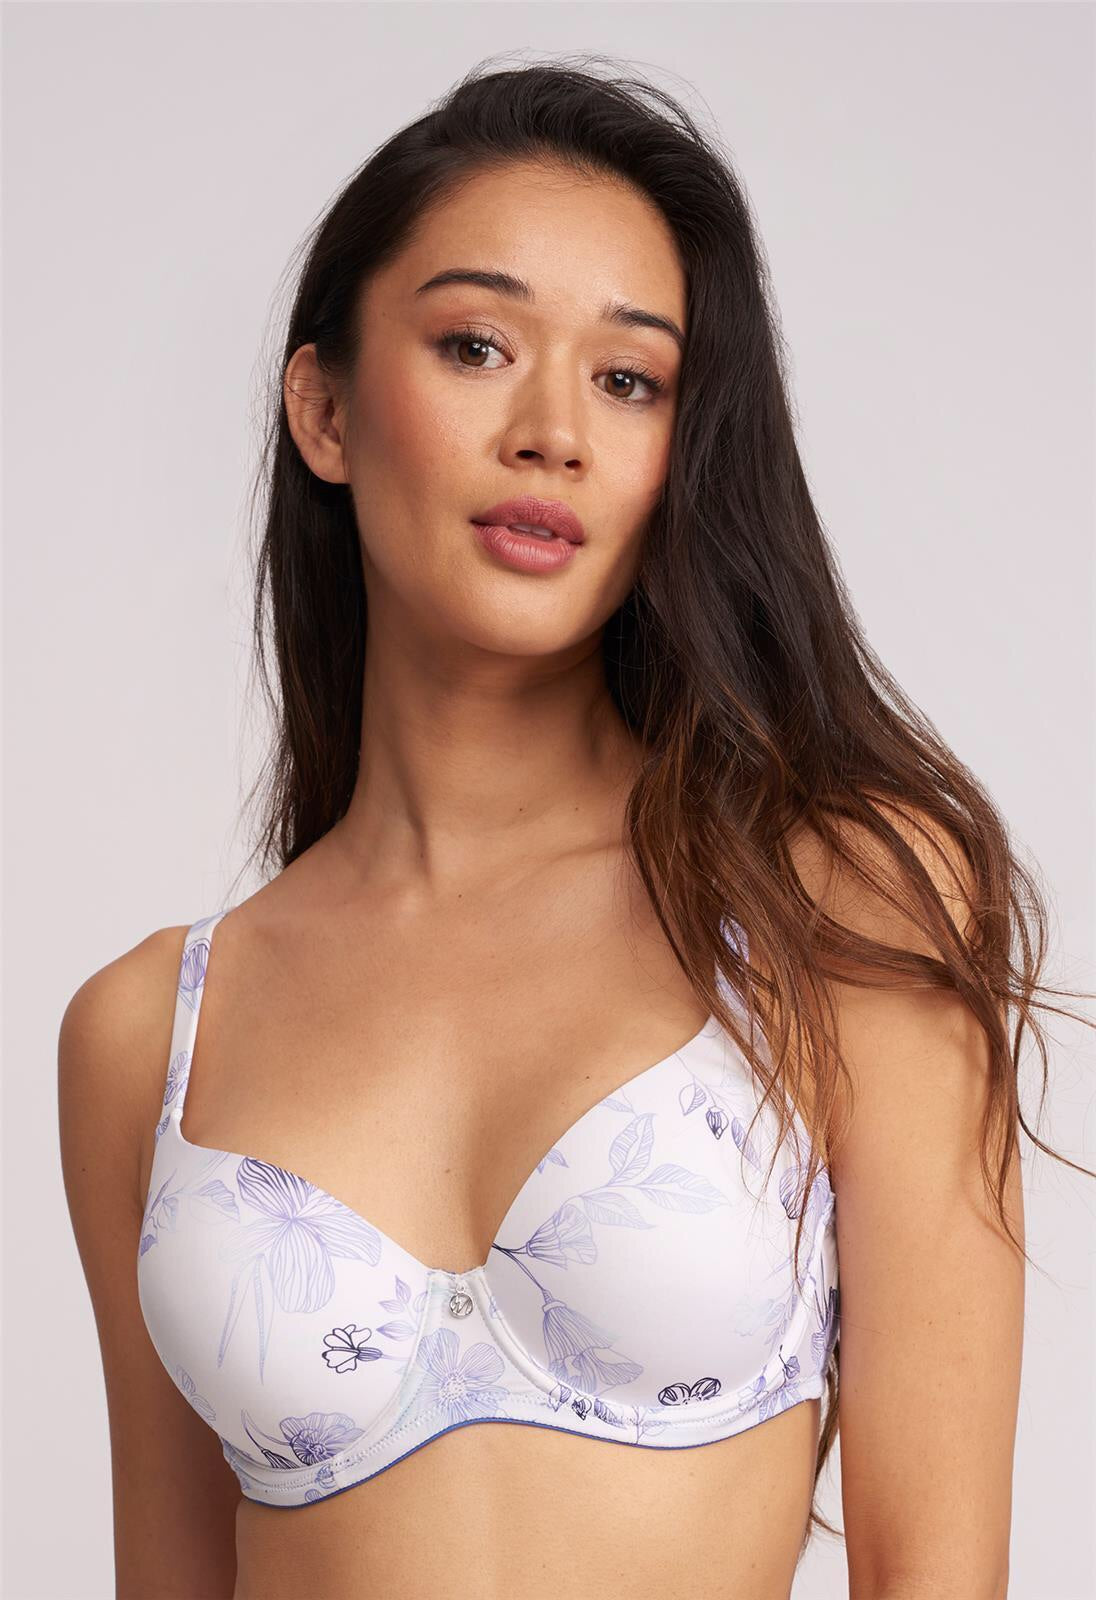 MONTELLE 9320 PURE PLUS FULL COVERAGE T-SHIRT BRA IN SANTORINI GARDEN